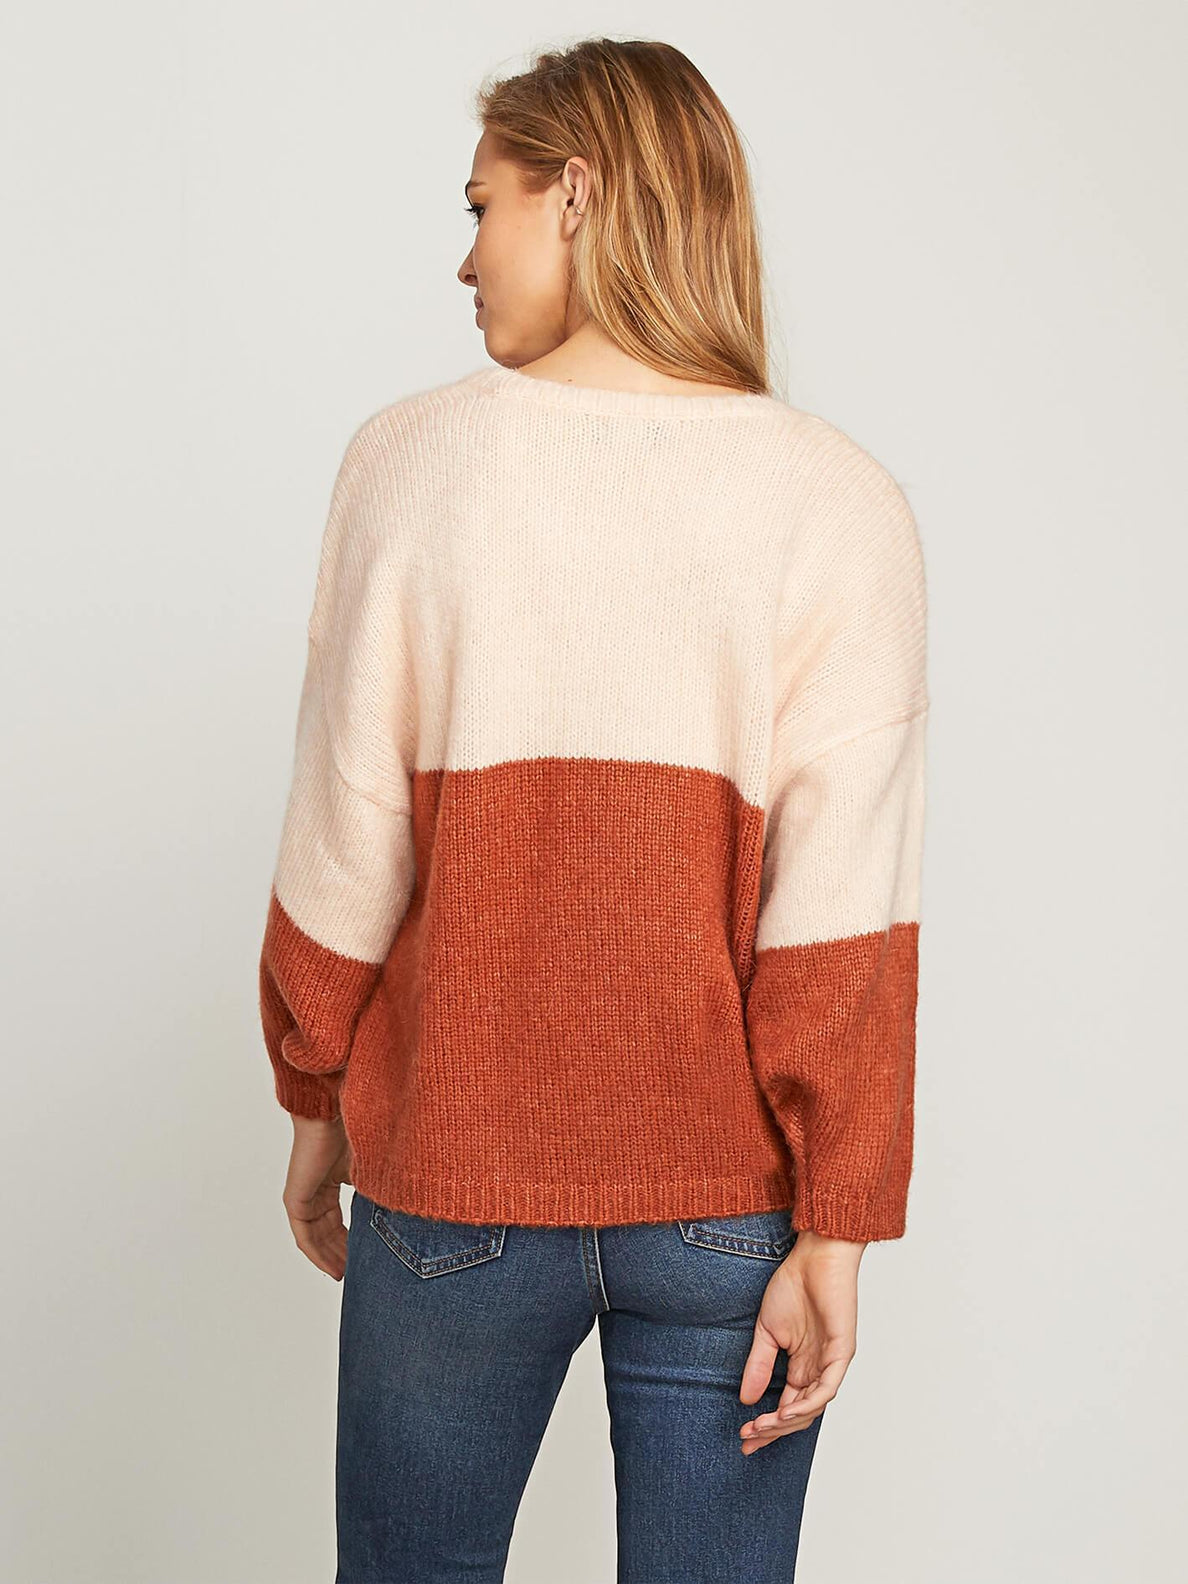 Dolhearted Sweater - Copper